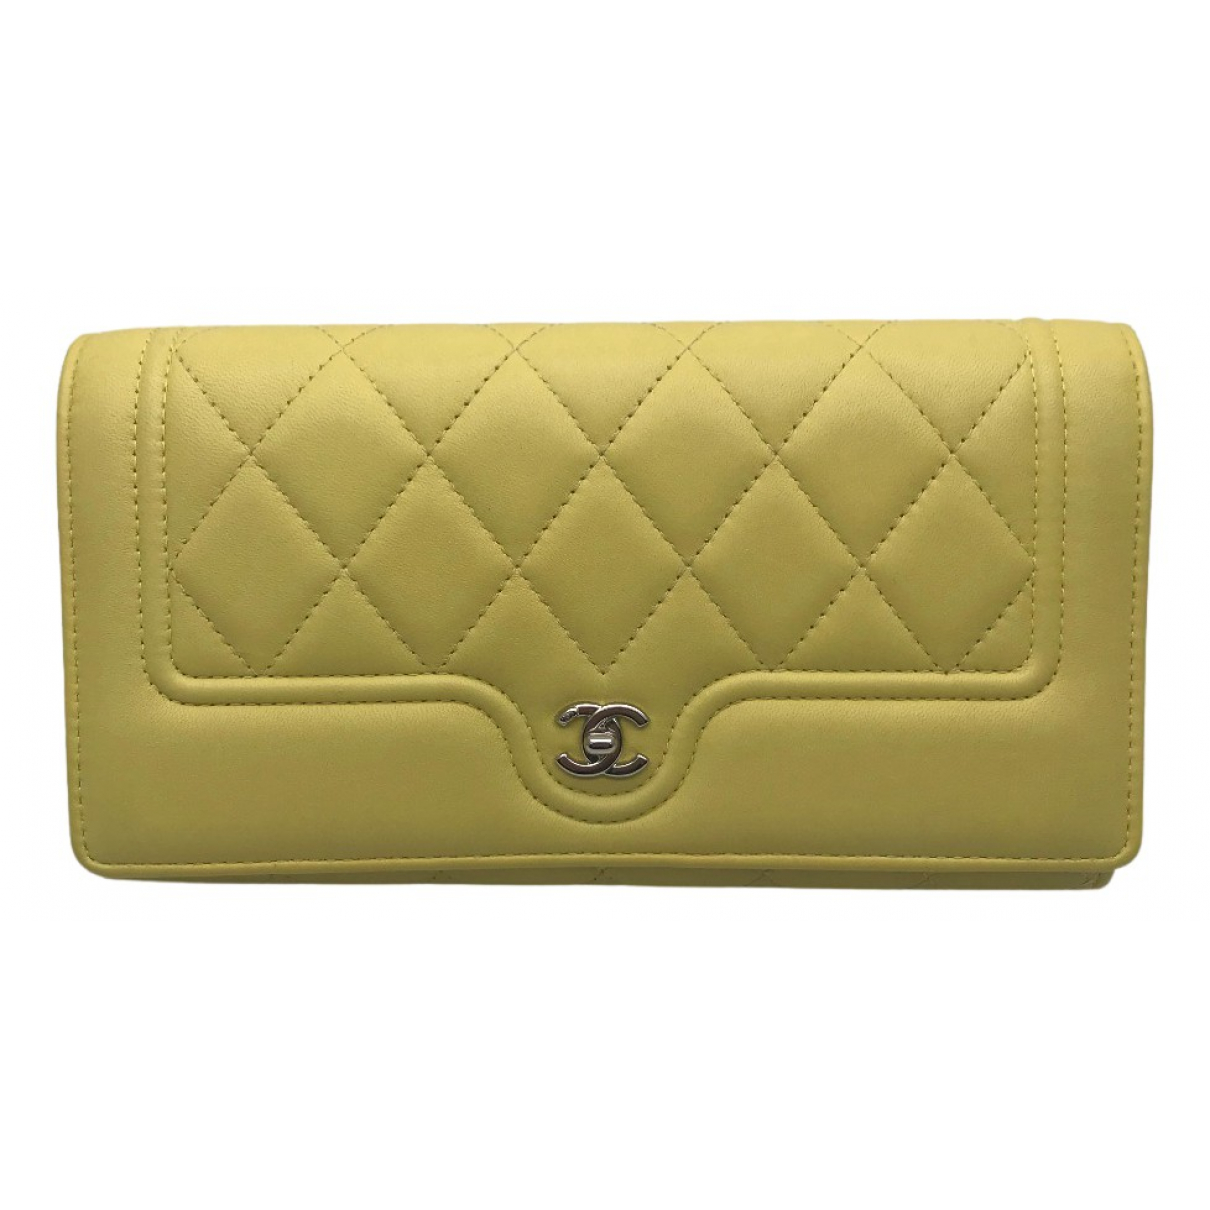 Chanel N Yellow Leather wallet for Women N